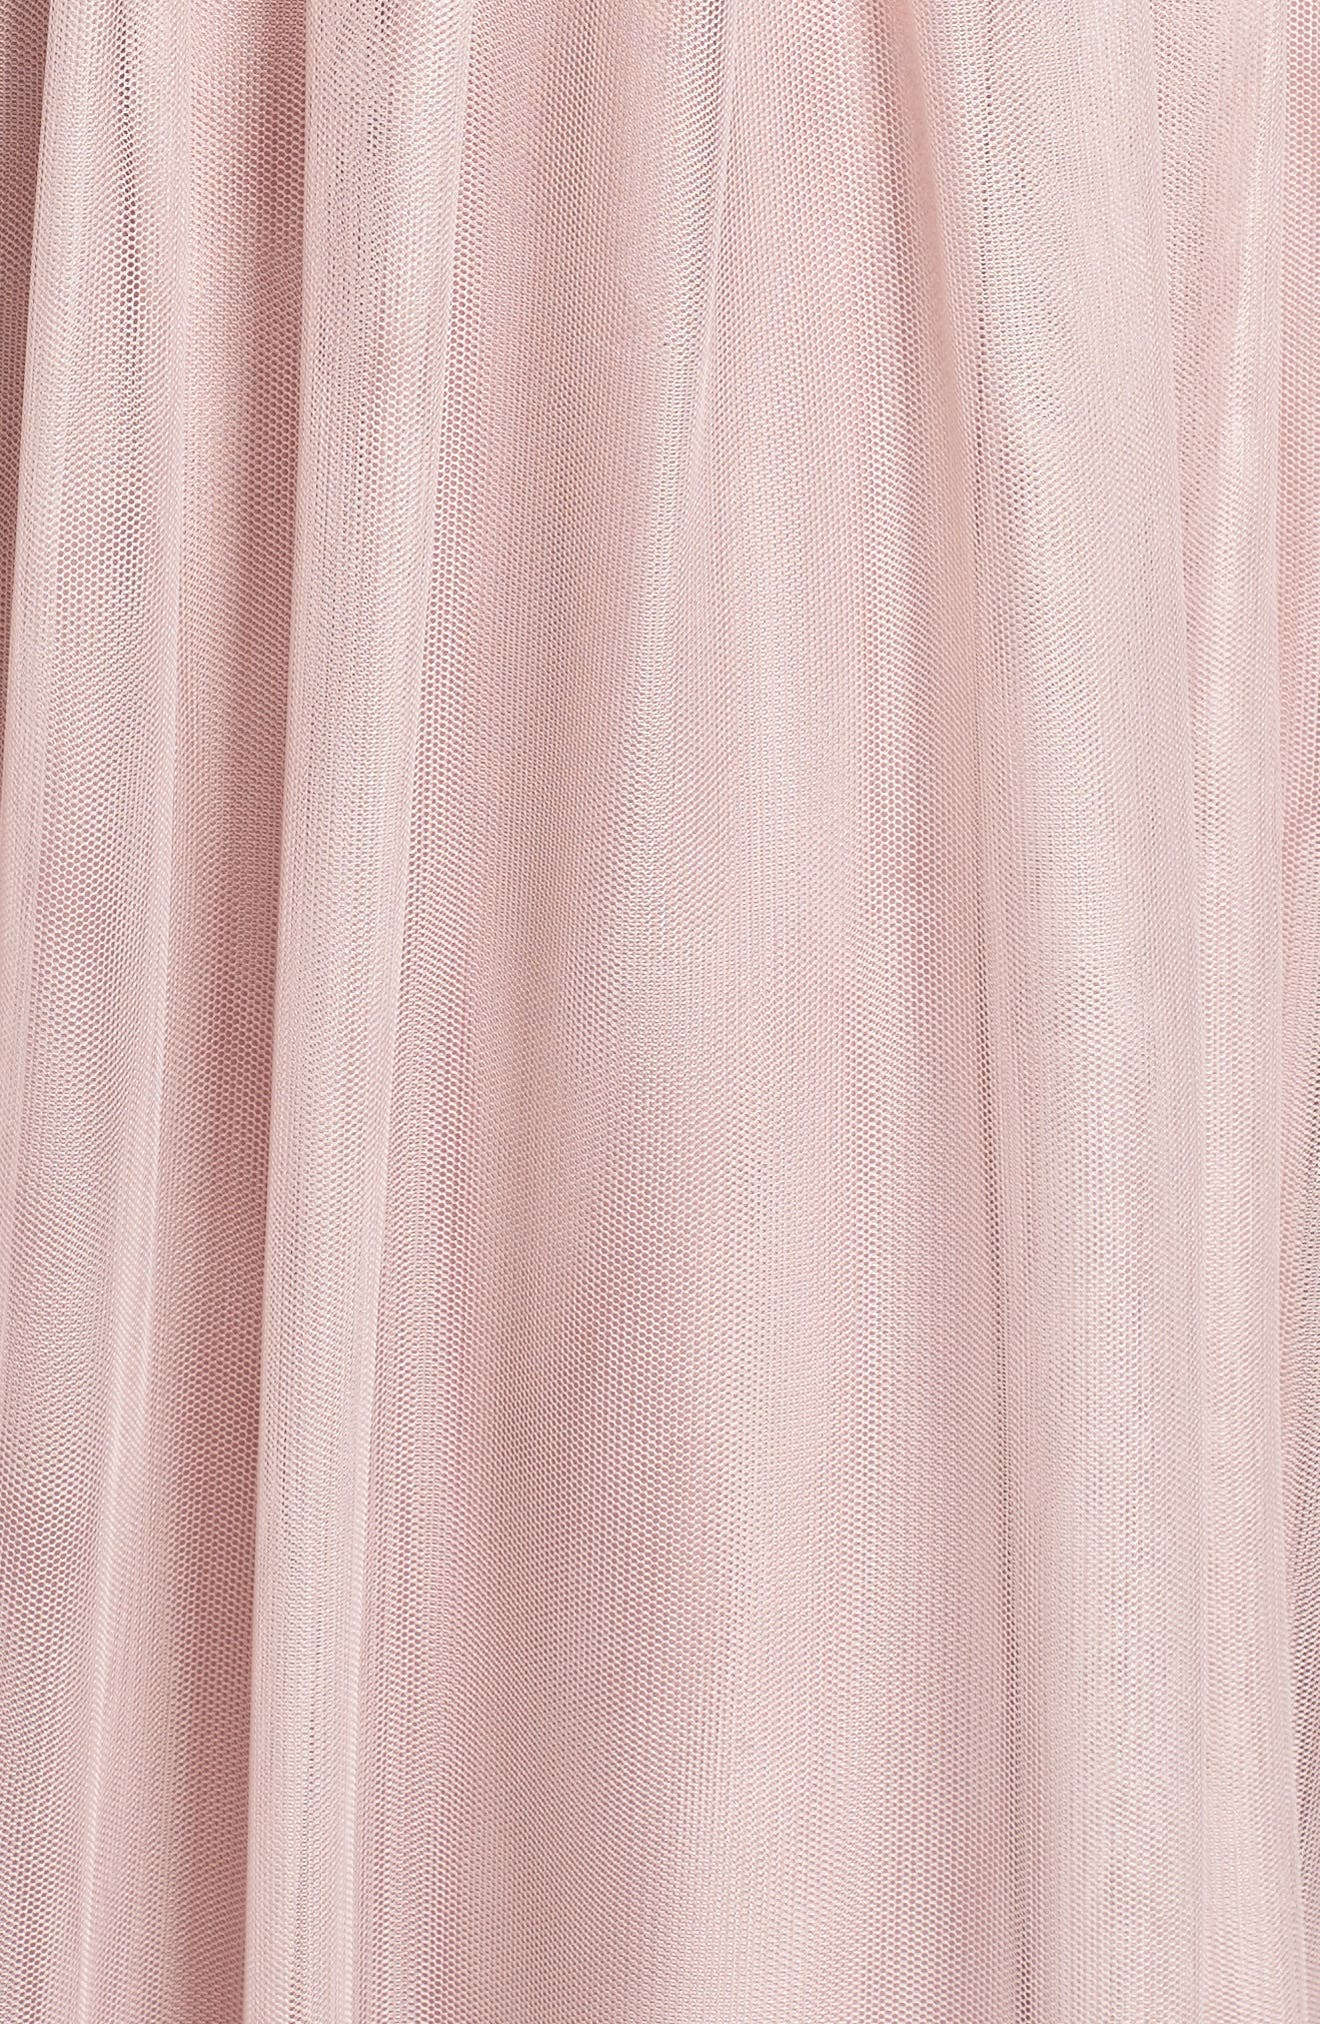 Embroidered Bodice Net Gown,                             Alternate thumbnail 6, color,                             Dusty Rose